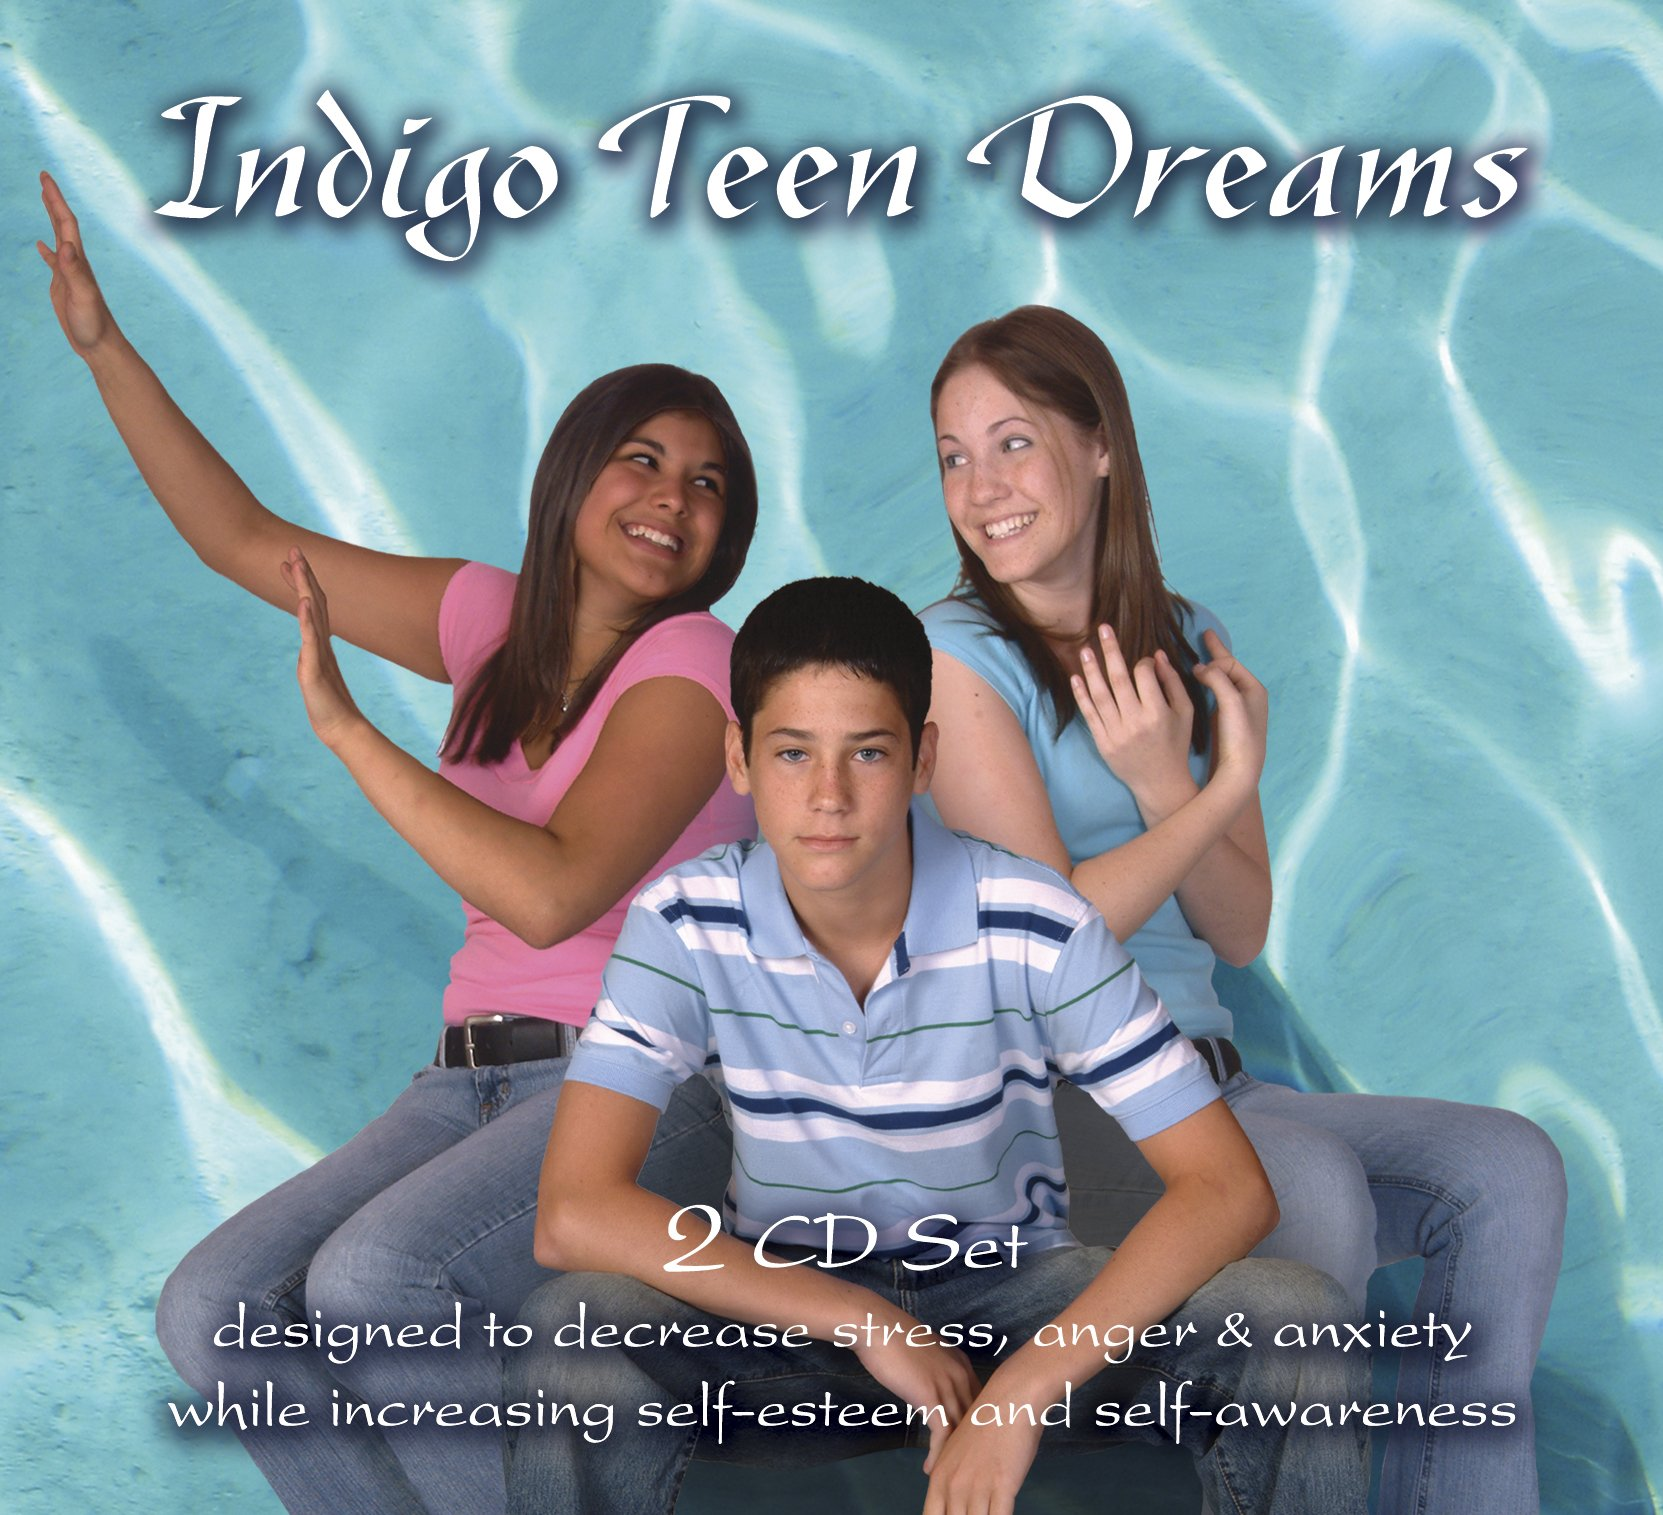 Indigo Teen Dreams Self Esteem Self Awareness product image